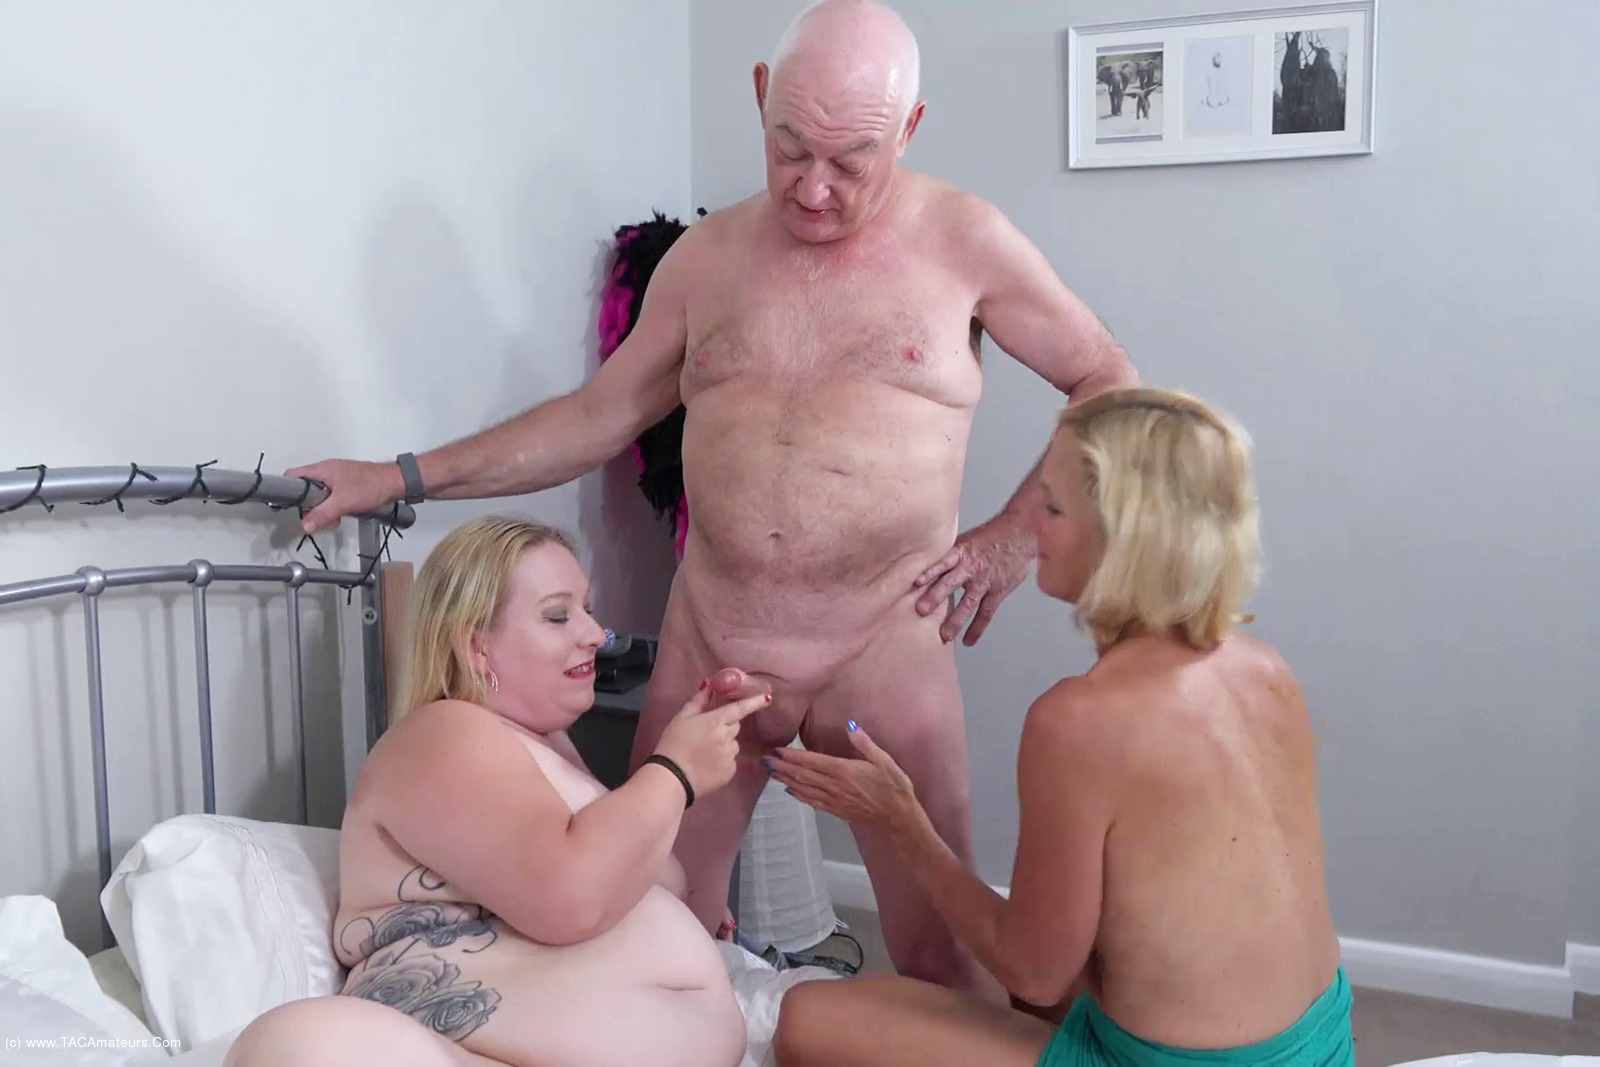 DirtyDoctor - The Window Cleaner Pt1 scene 2